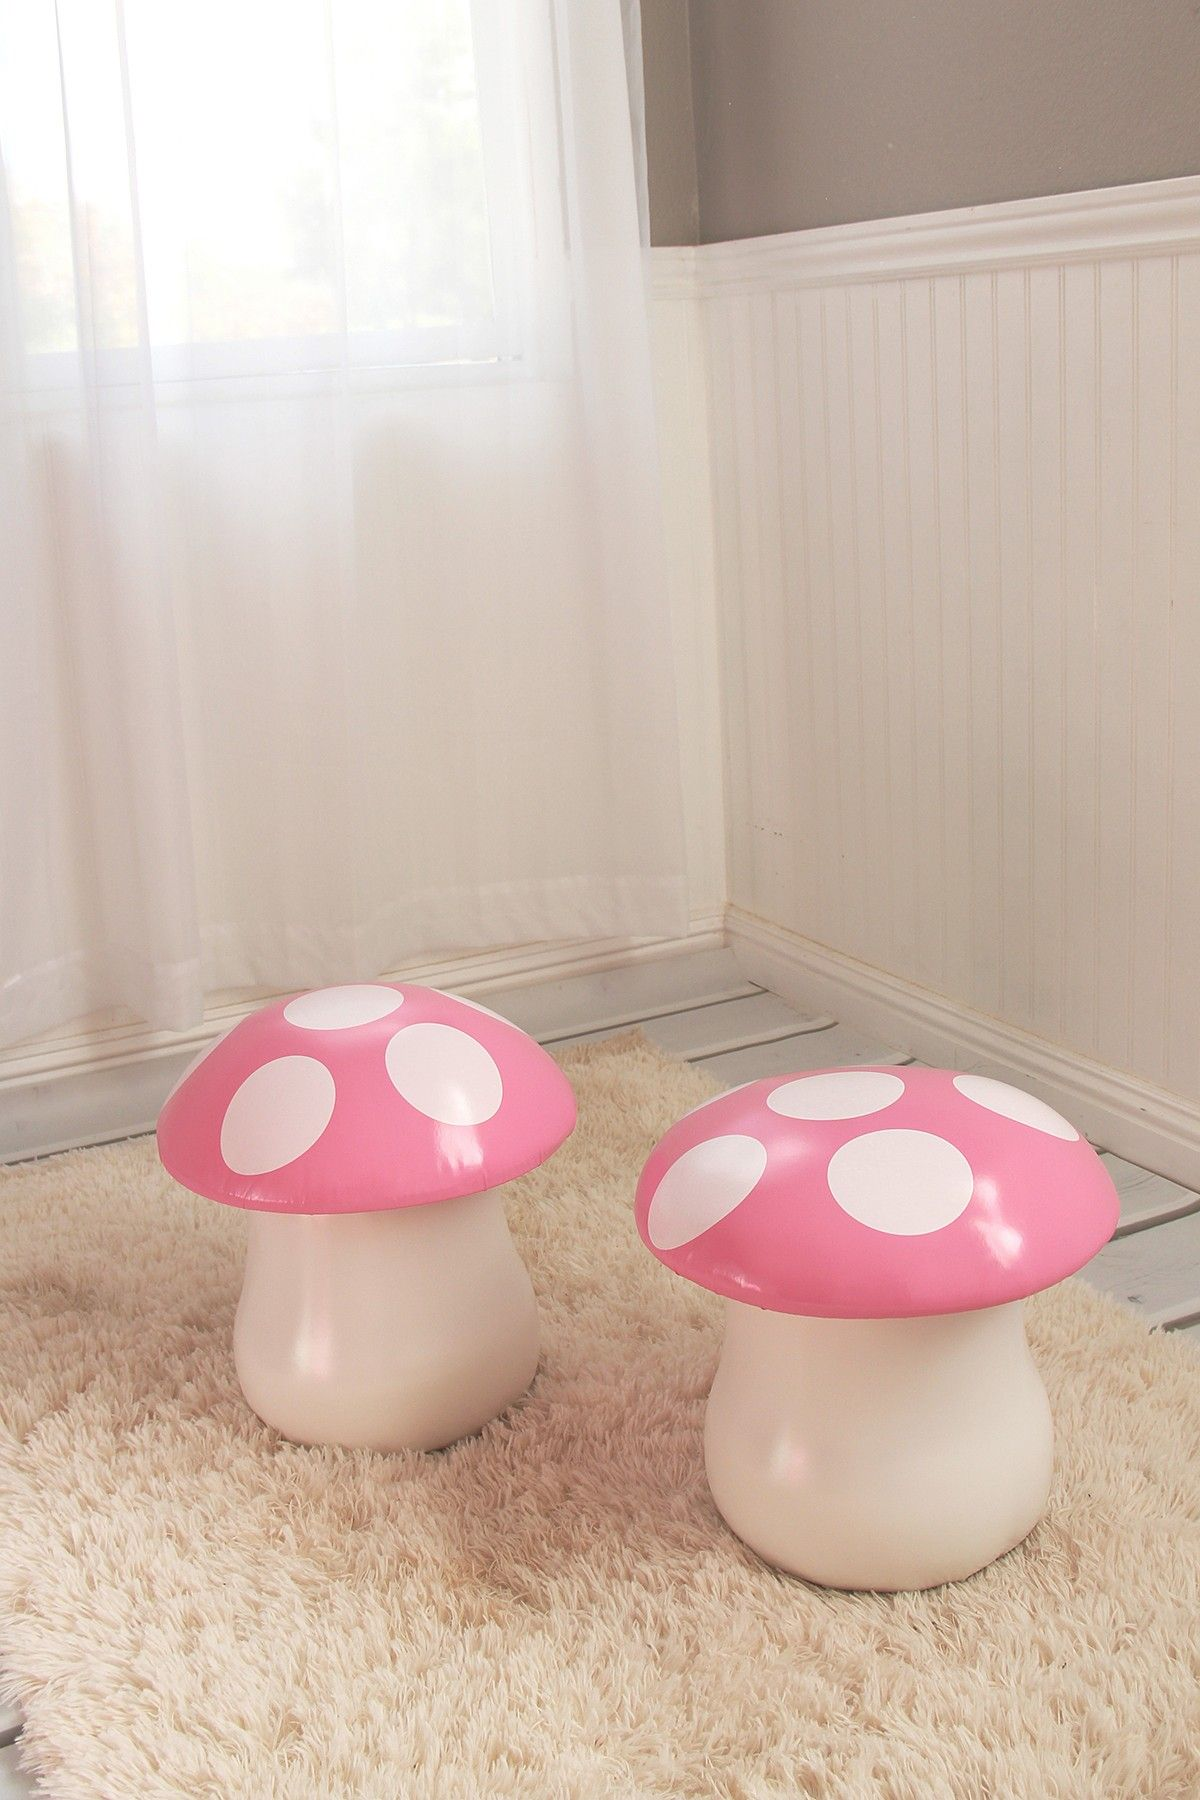 Mushroom Chairs - Set of 2 & Mushroom Chairs - Set of 2 | Mushroom chair Room and Kids rooms